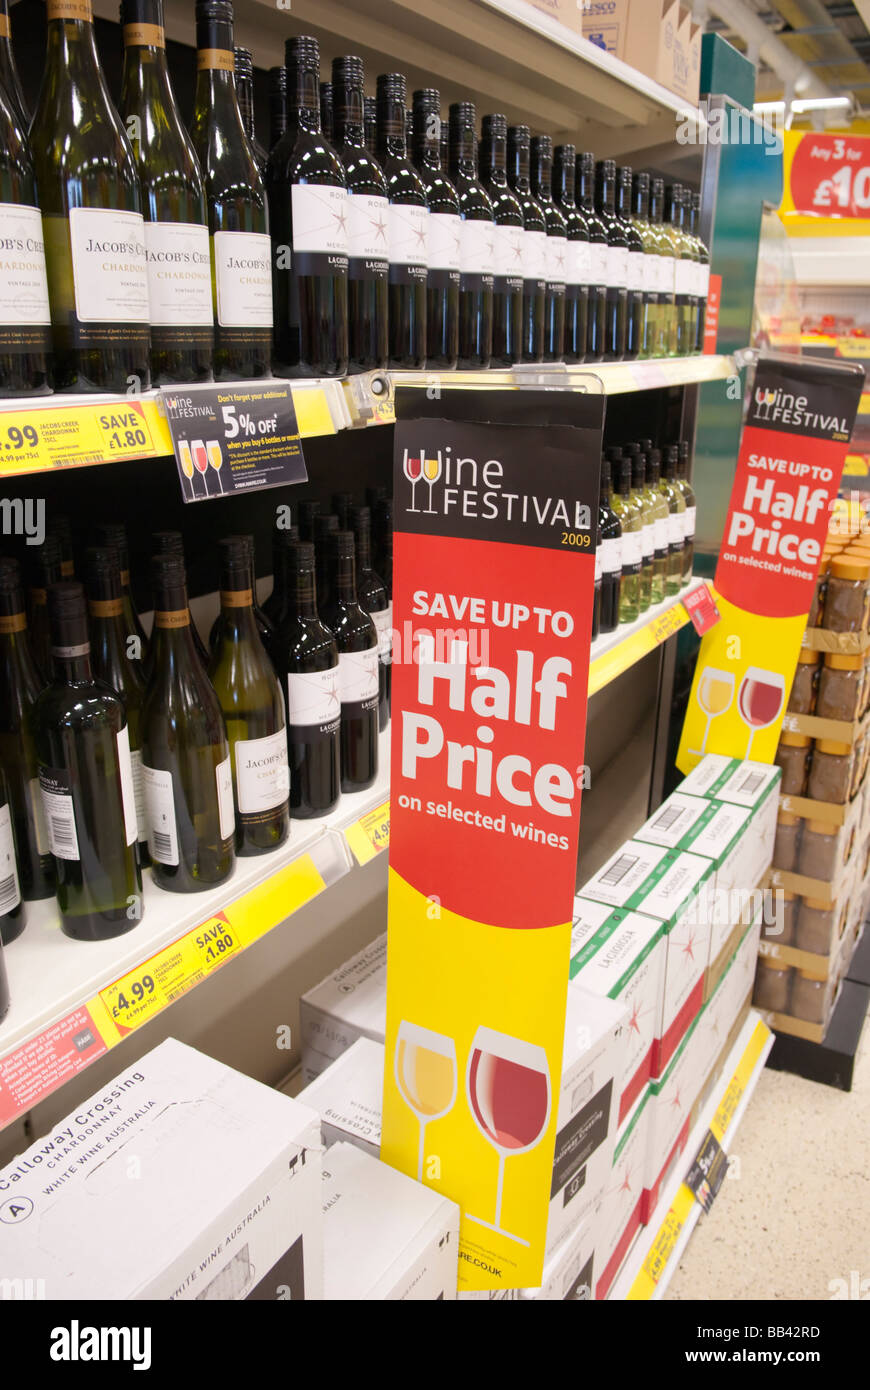 Cheap alcohol (bottles of wine) for sale on the shelves of a uk supermarket (Tesco) selling at half price - Stock Image